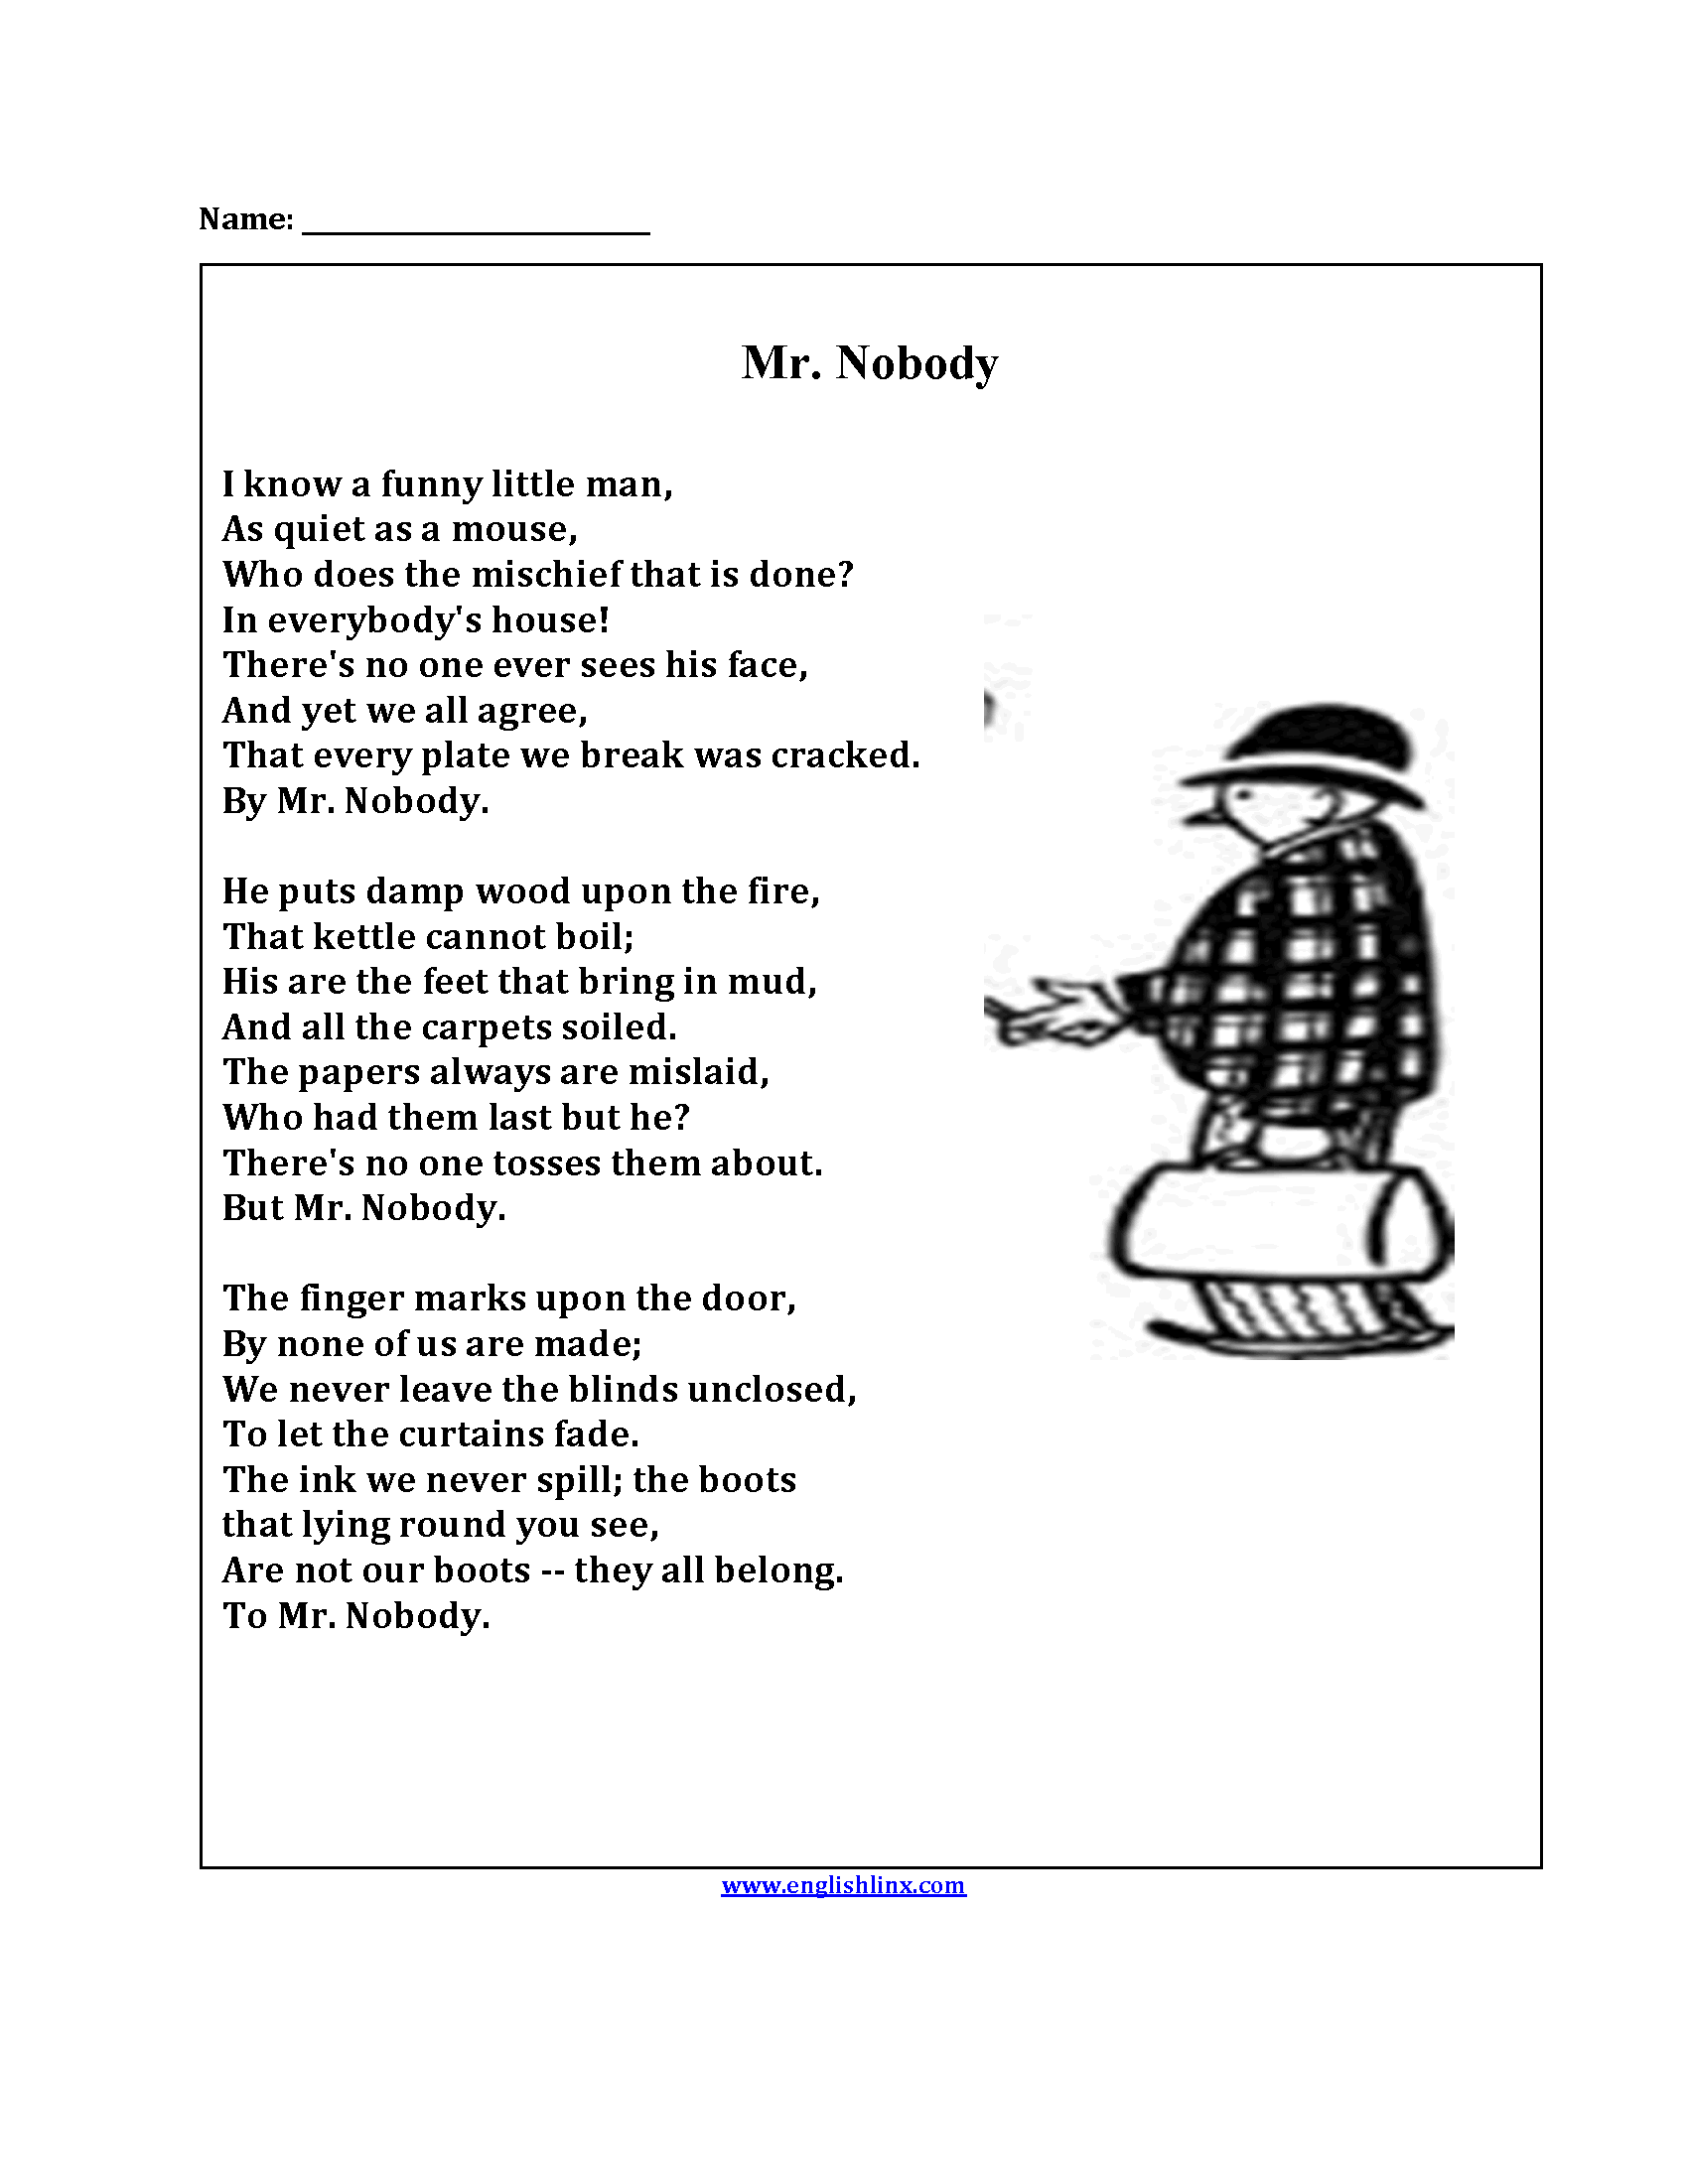 Mr Nobody Poetry Worksheets